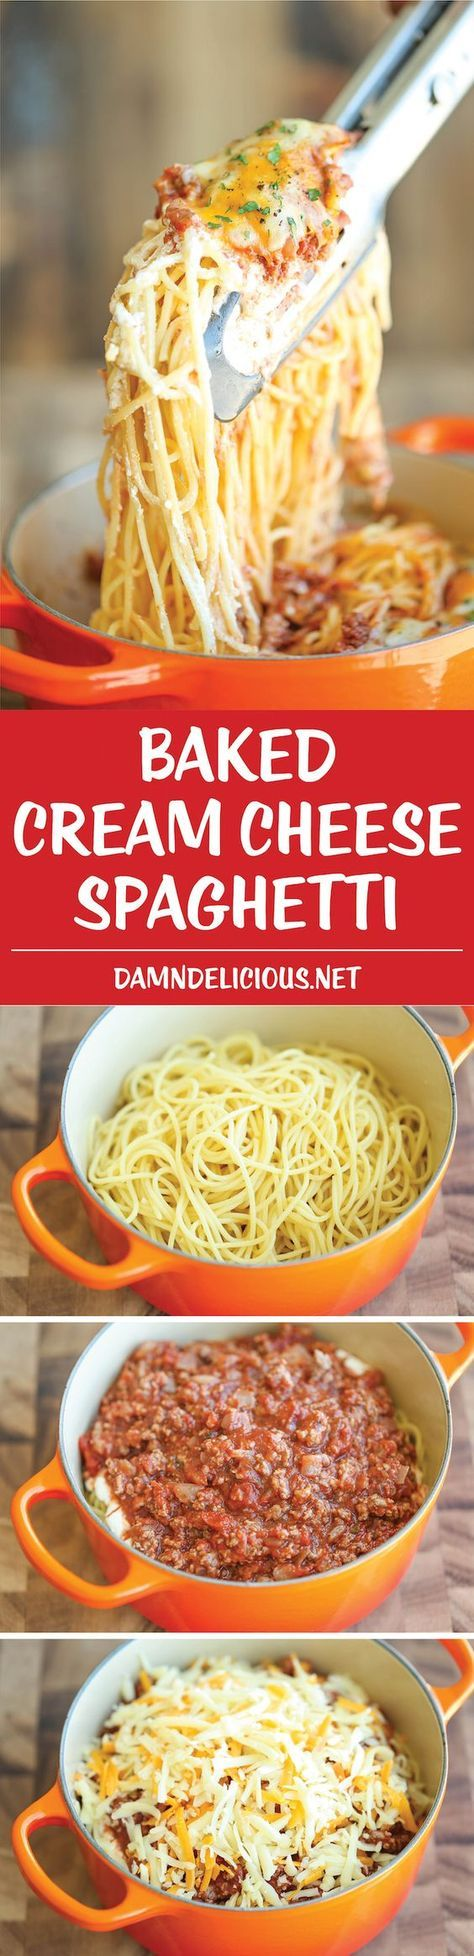 Baked Cream Cheese Spaghetti Recipe Baked Cream Cheese Spaghetti Cream Cheese Spaghetti Food Drink